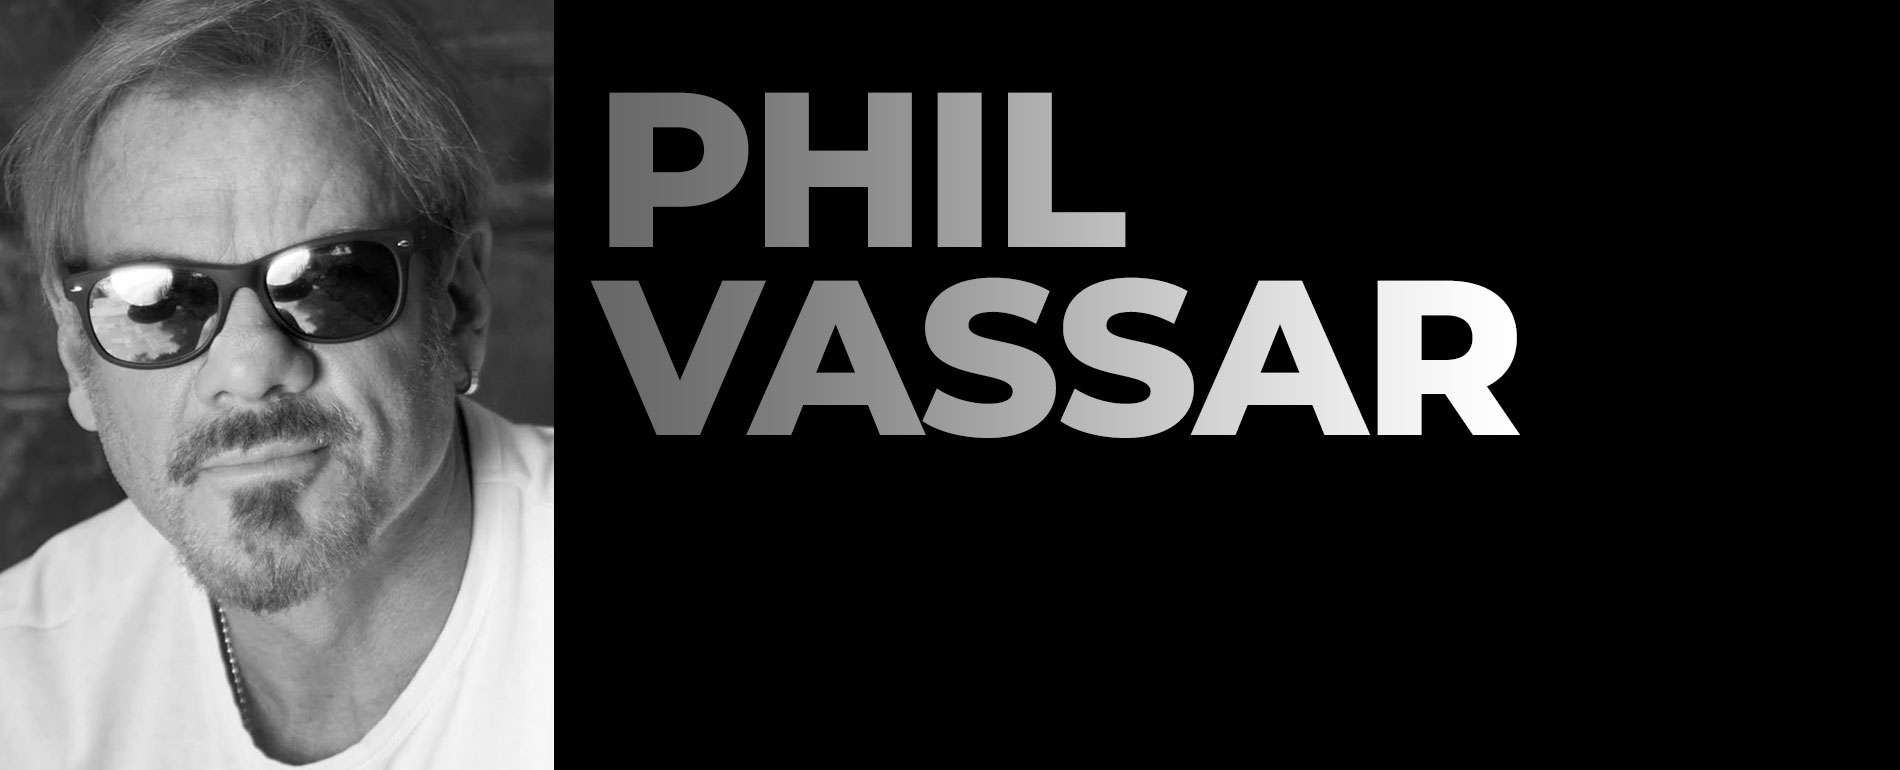 poconos event - phil vassar